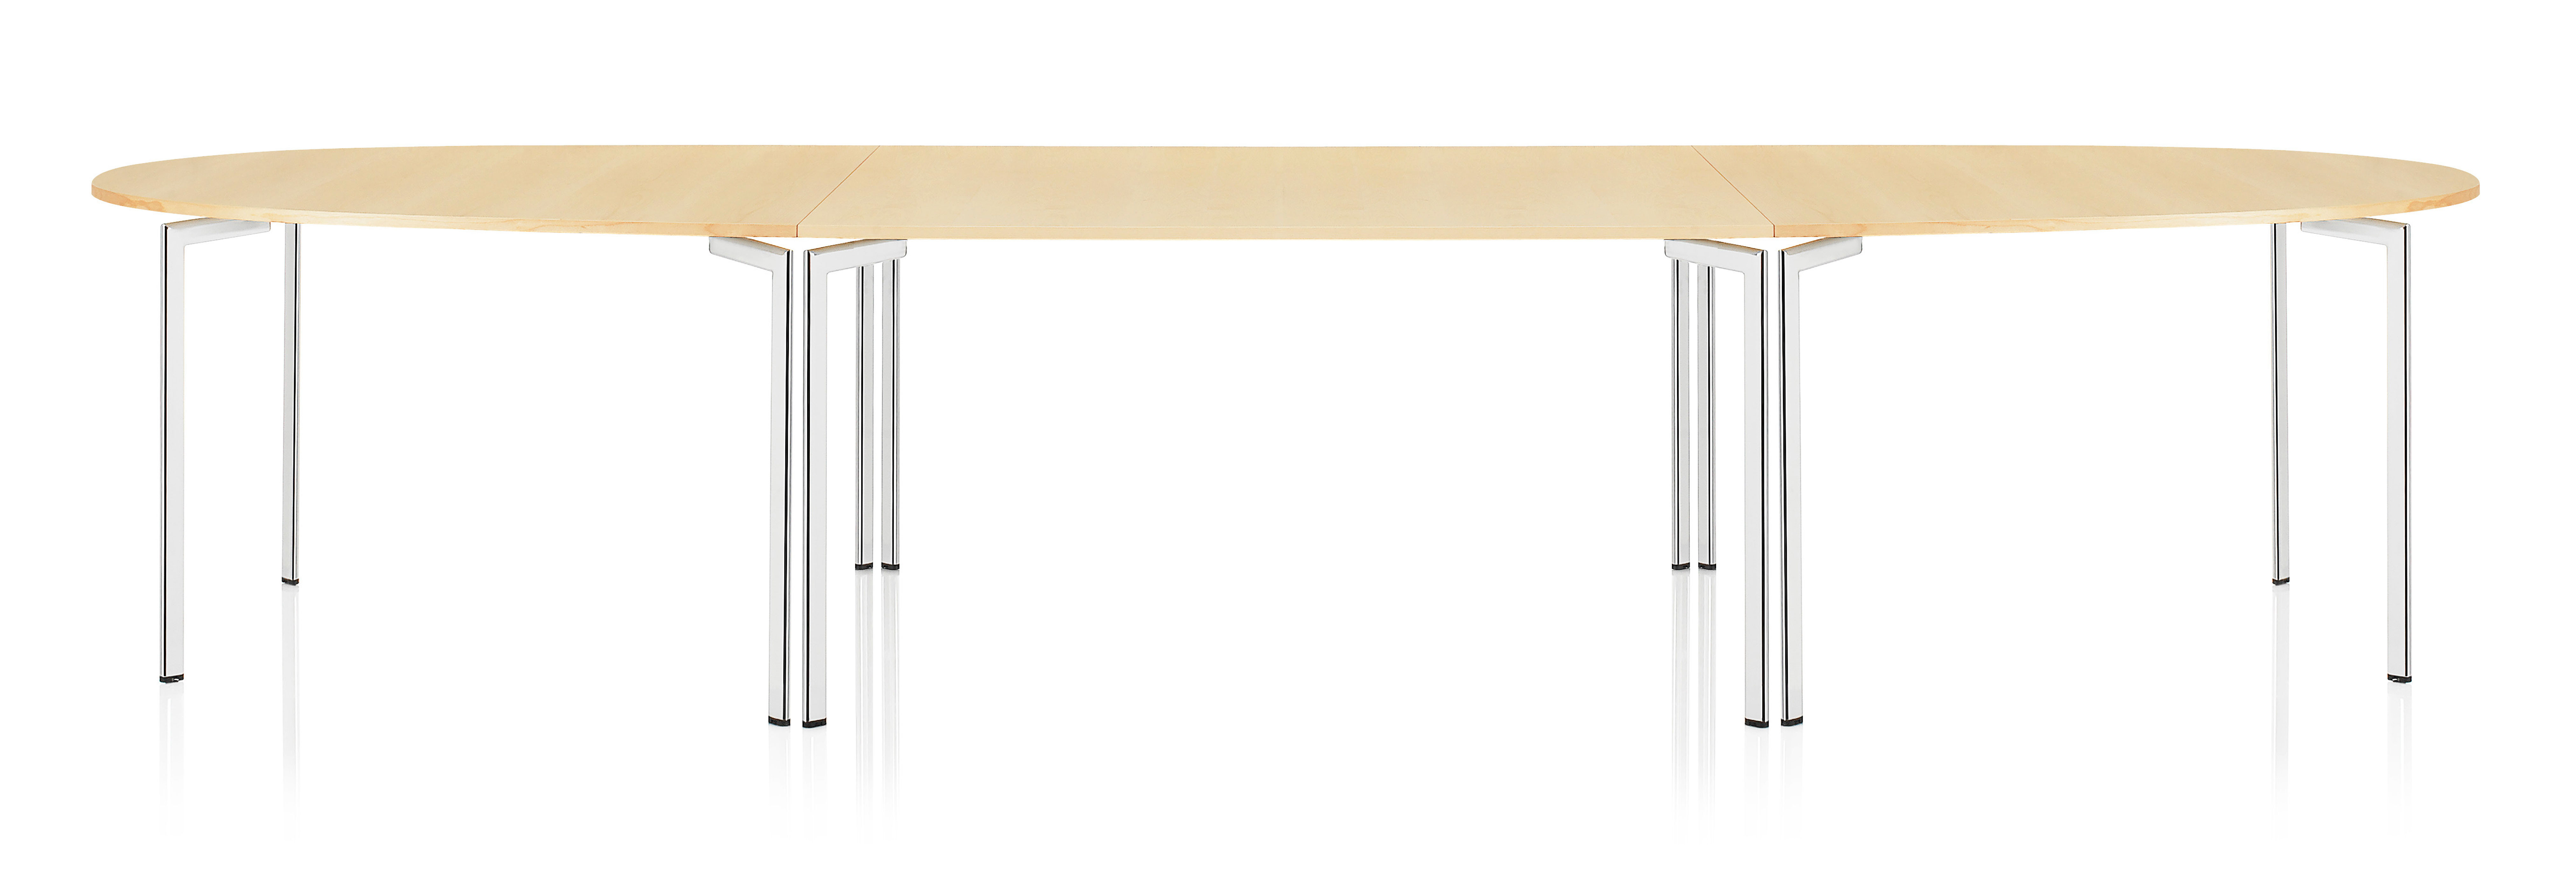 Campus Tables Trolleys Lammhults # Table Tele Simple